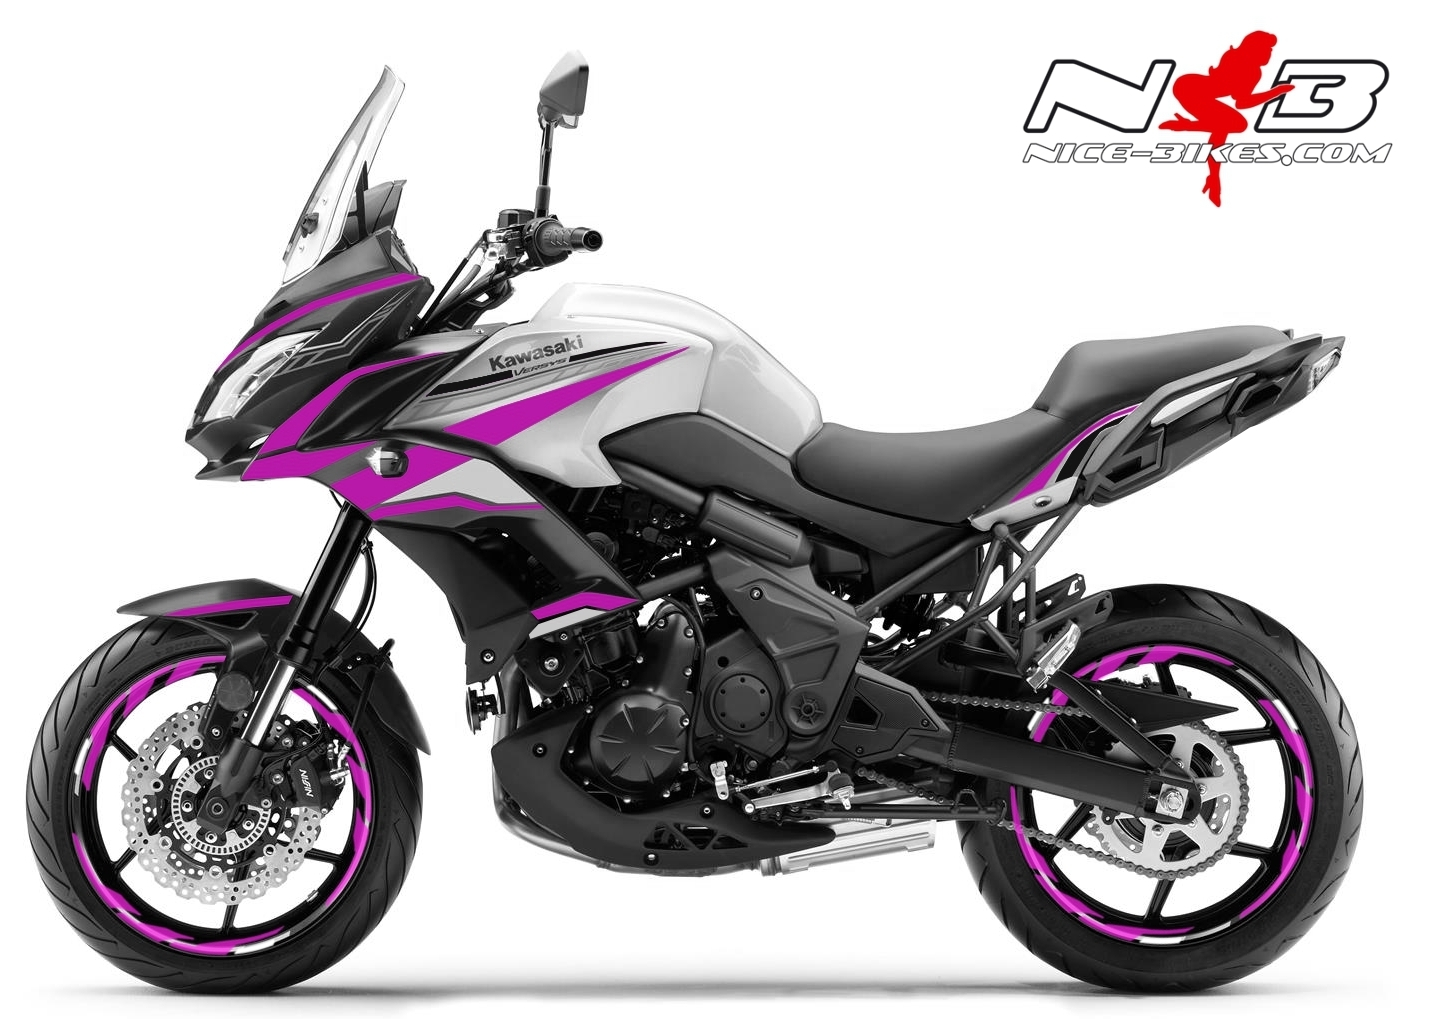 Foliendesign Kawasaki Versys 650 Bj. 2020 Pretty Pink